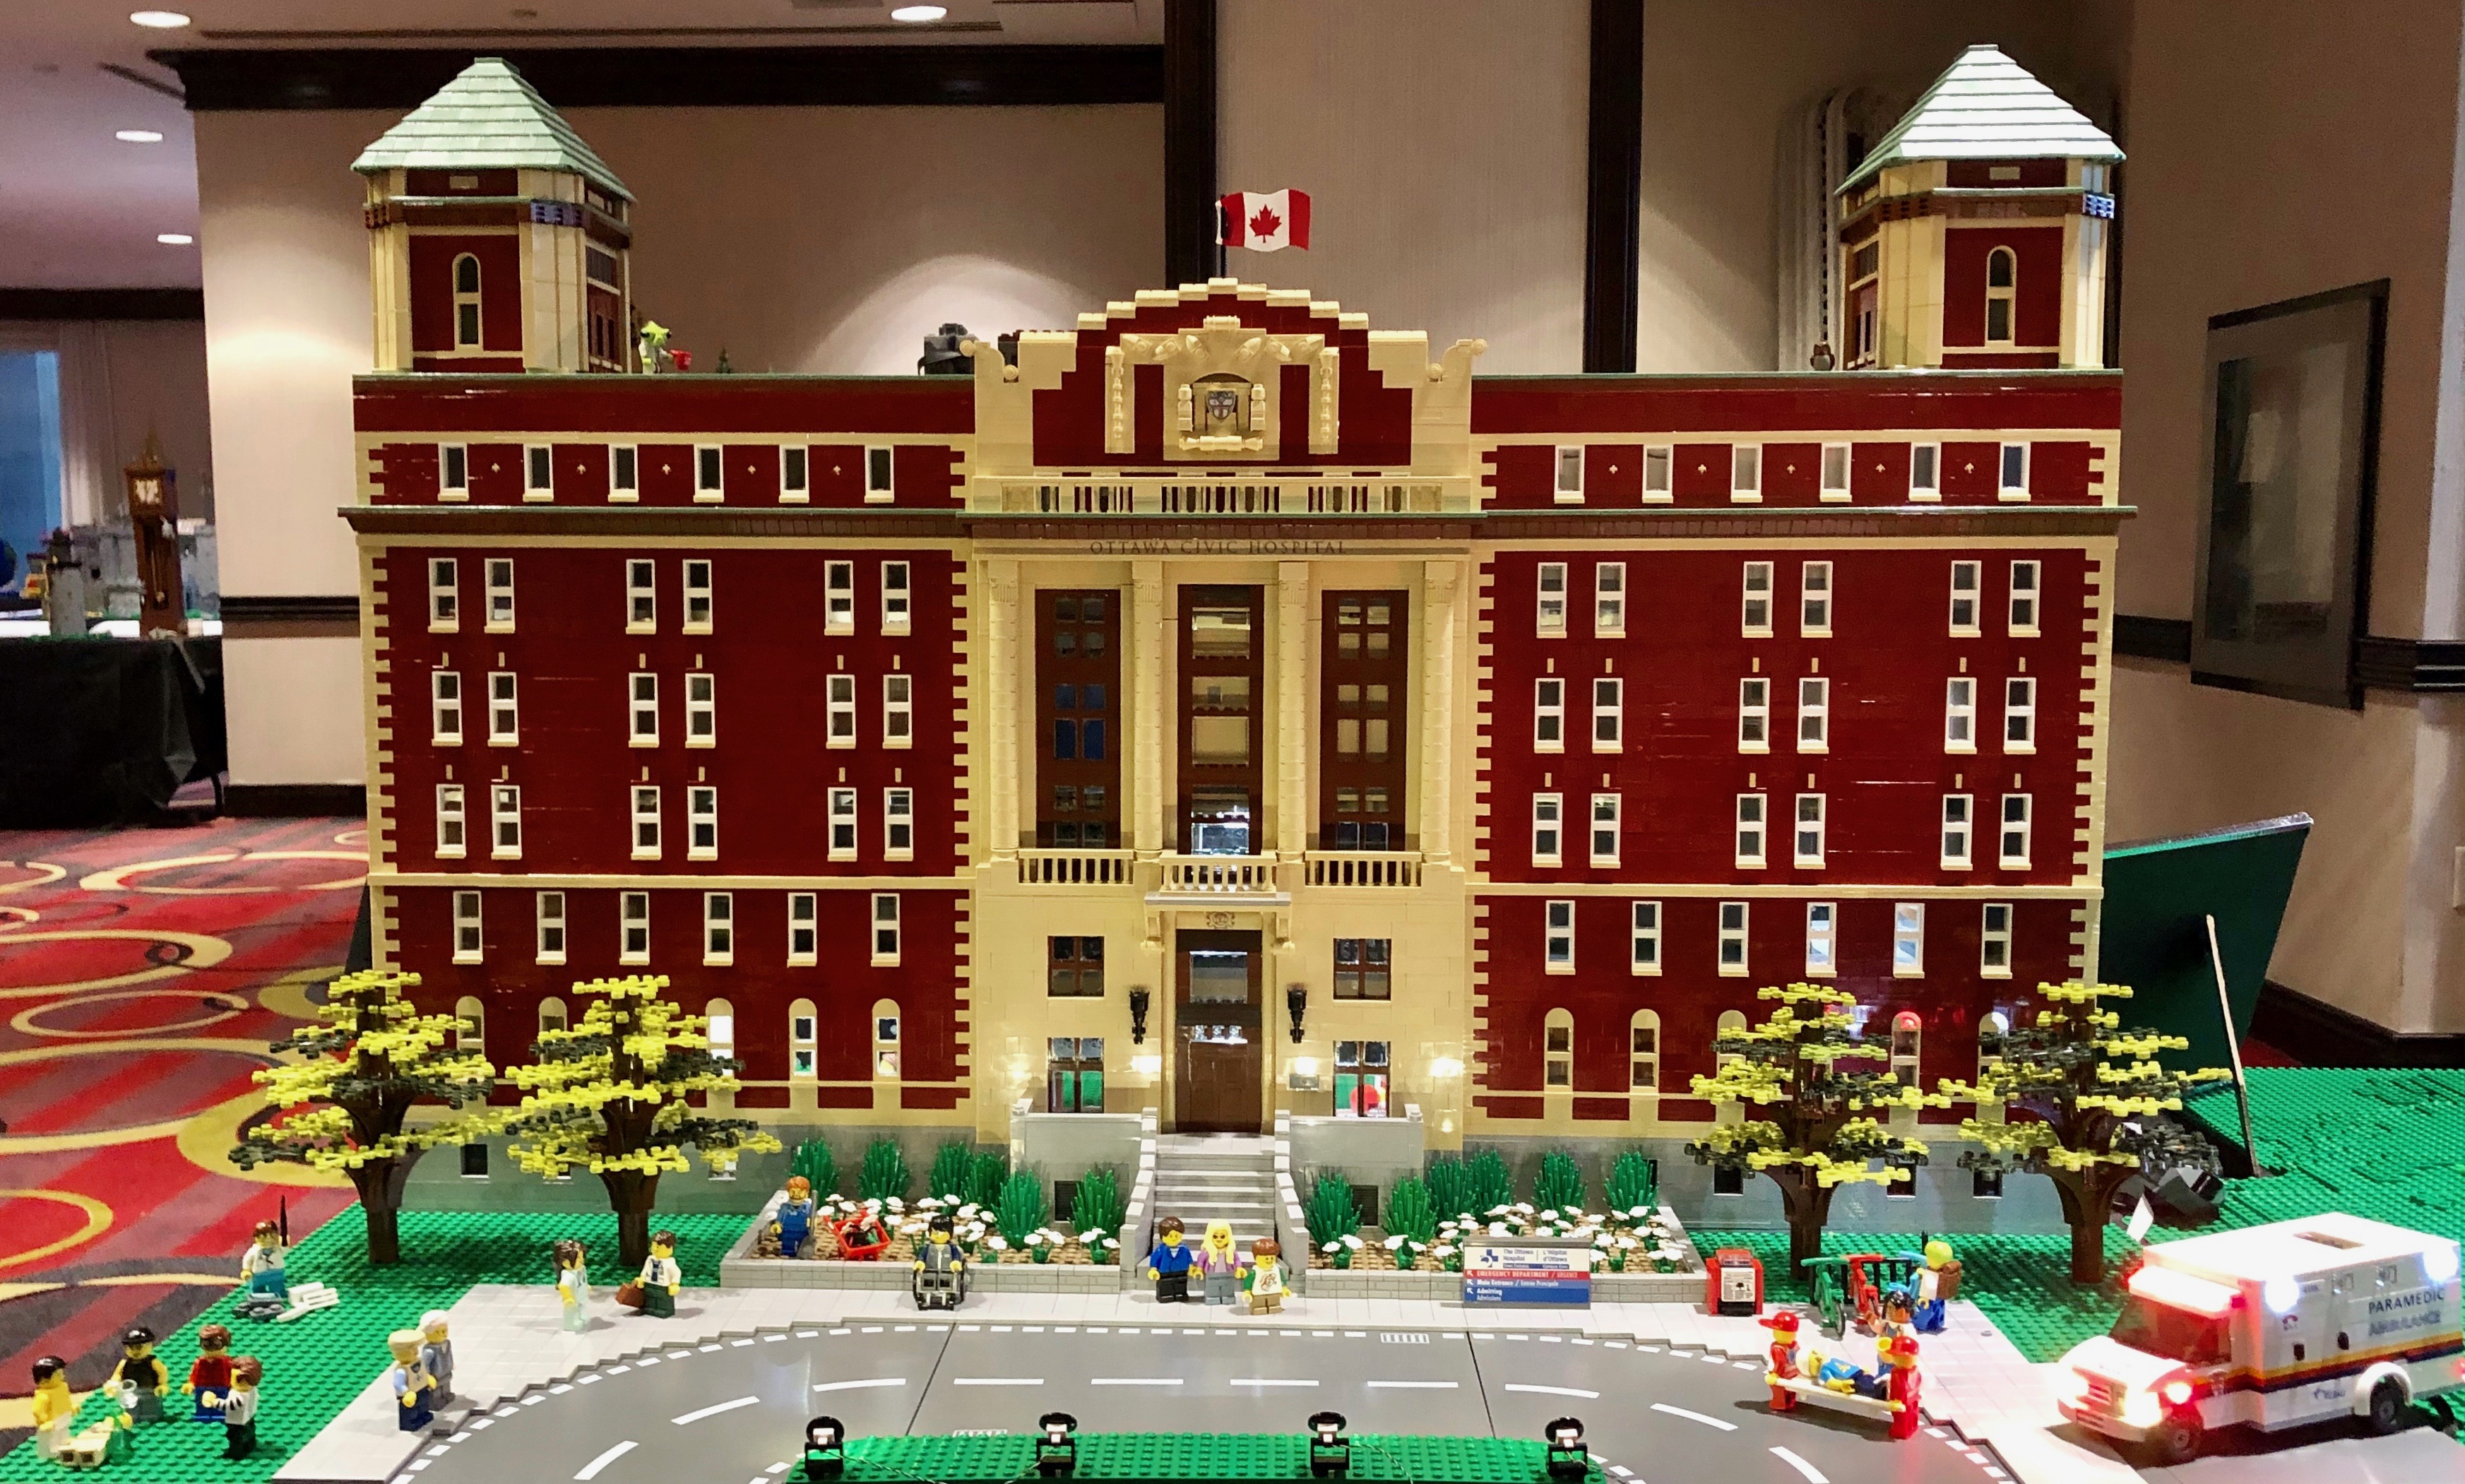 Lego replica of The Ottawa Hospital's Civic Campus.